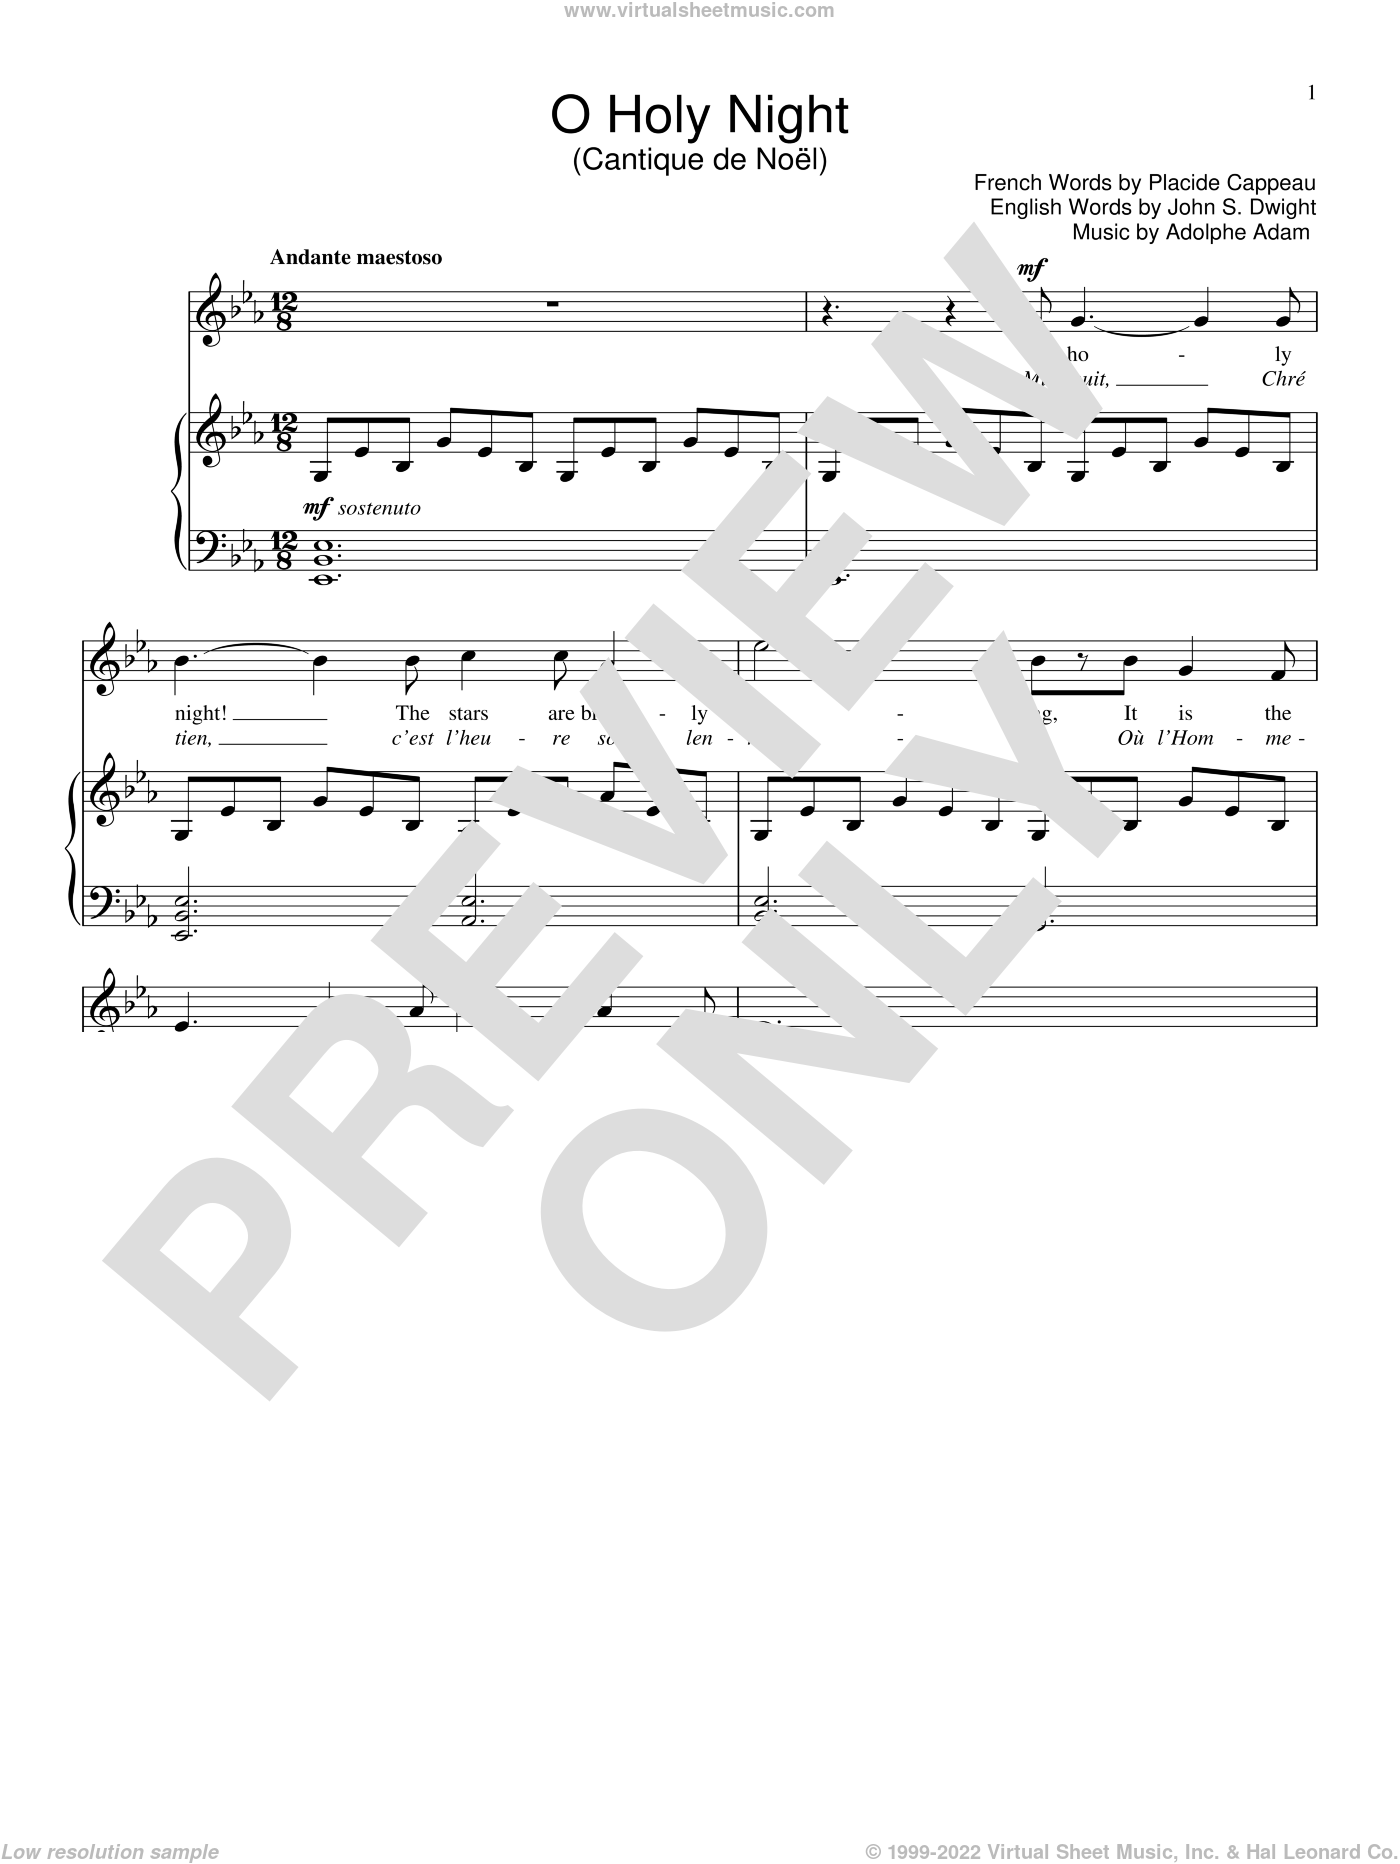 O Holy Night sheet music for voice and piano by Adolphe Adam, John S. Dwight and Placide Cappeau, intermediate skill level